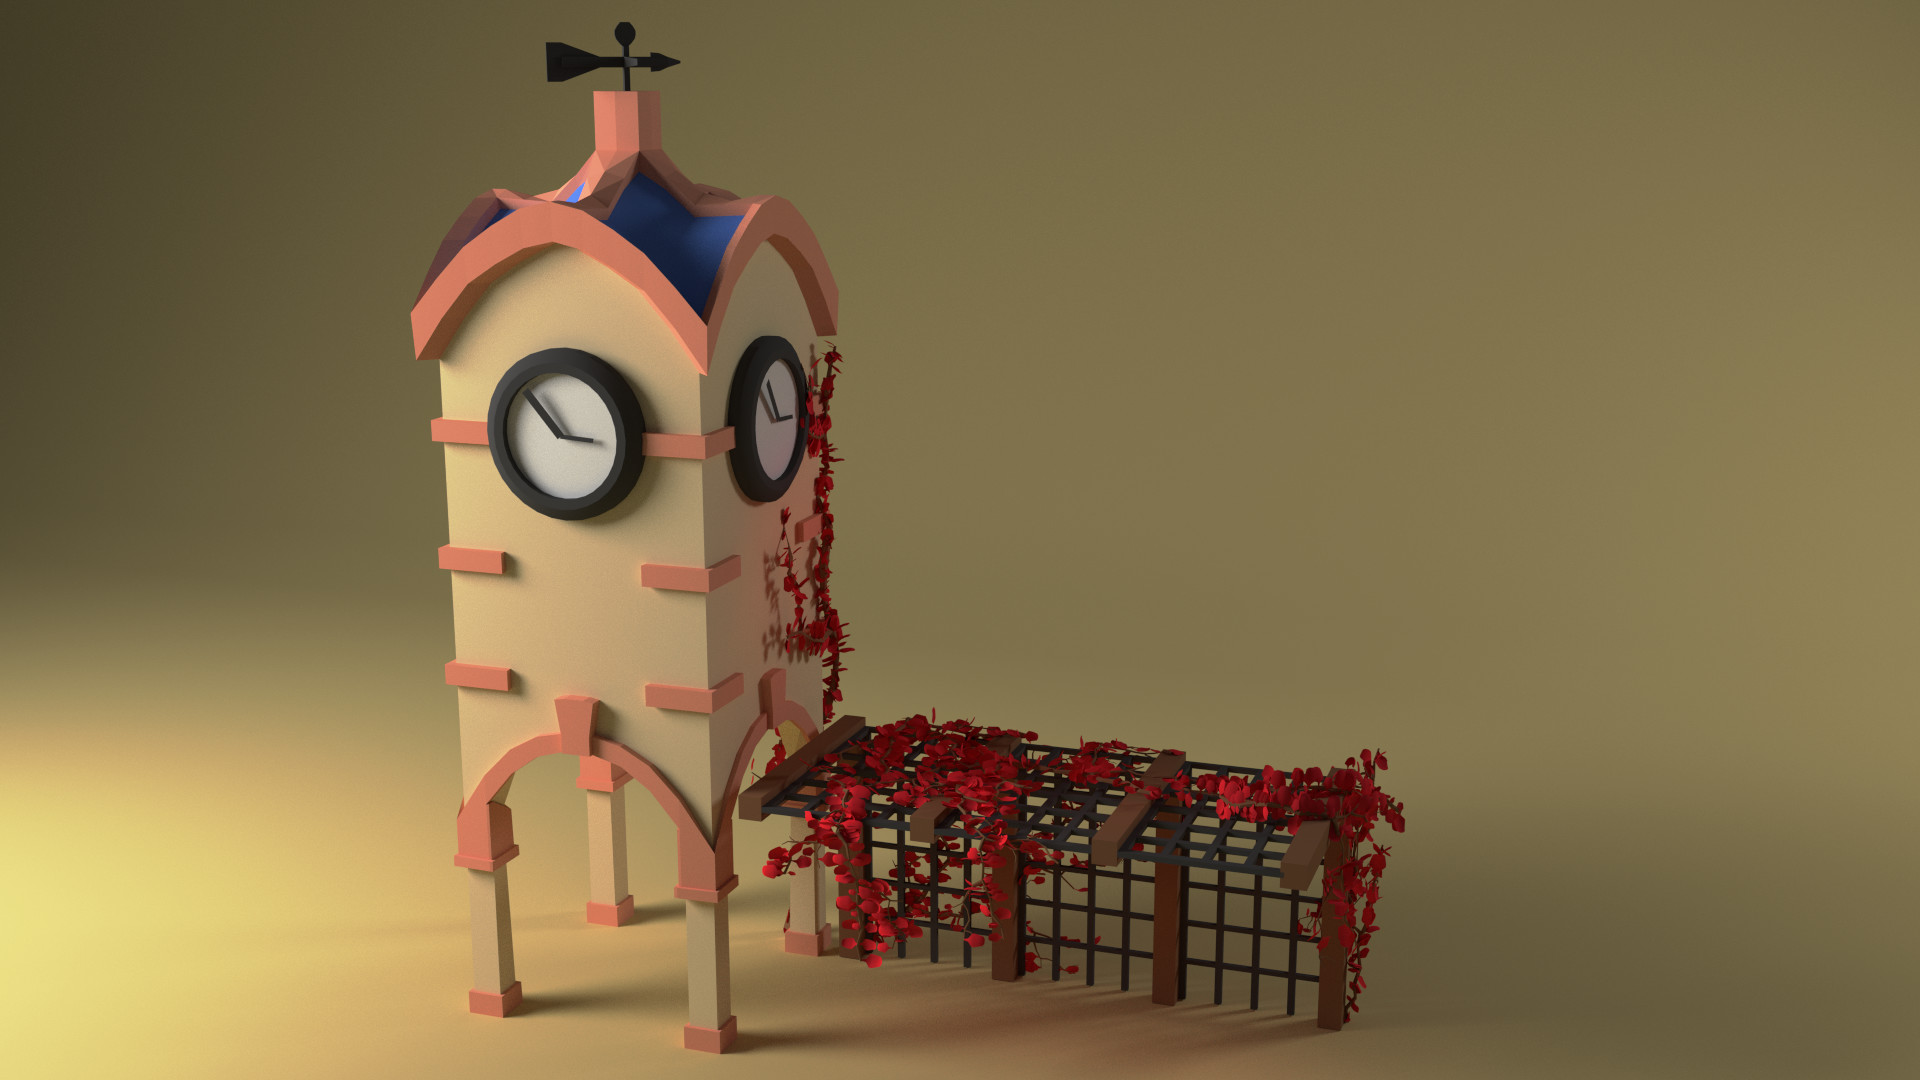 Andrew weir 3d low poly clock tower by piplington d8xl4nz